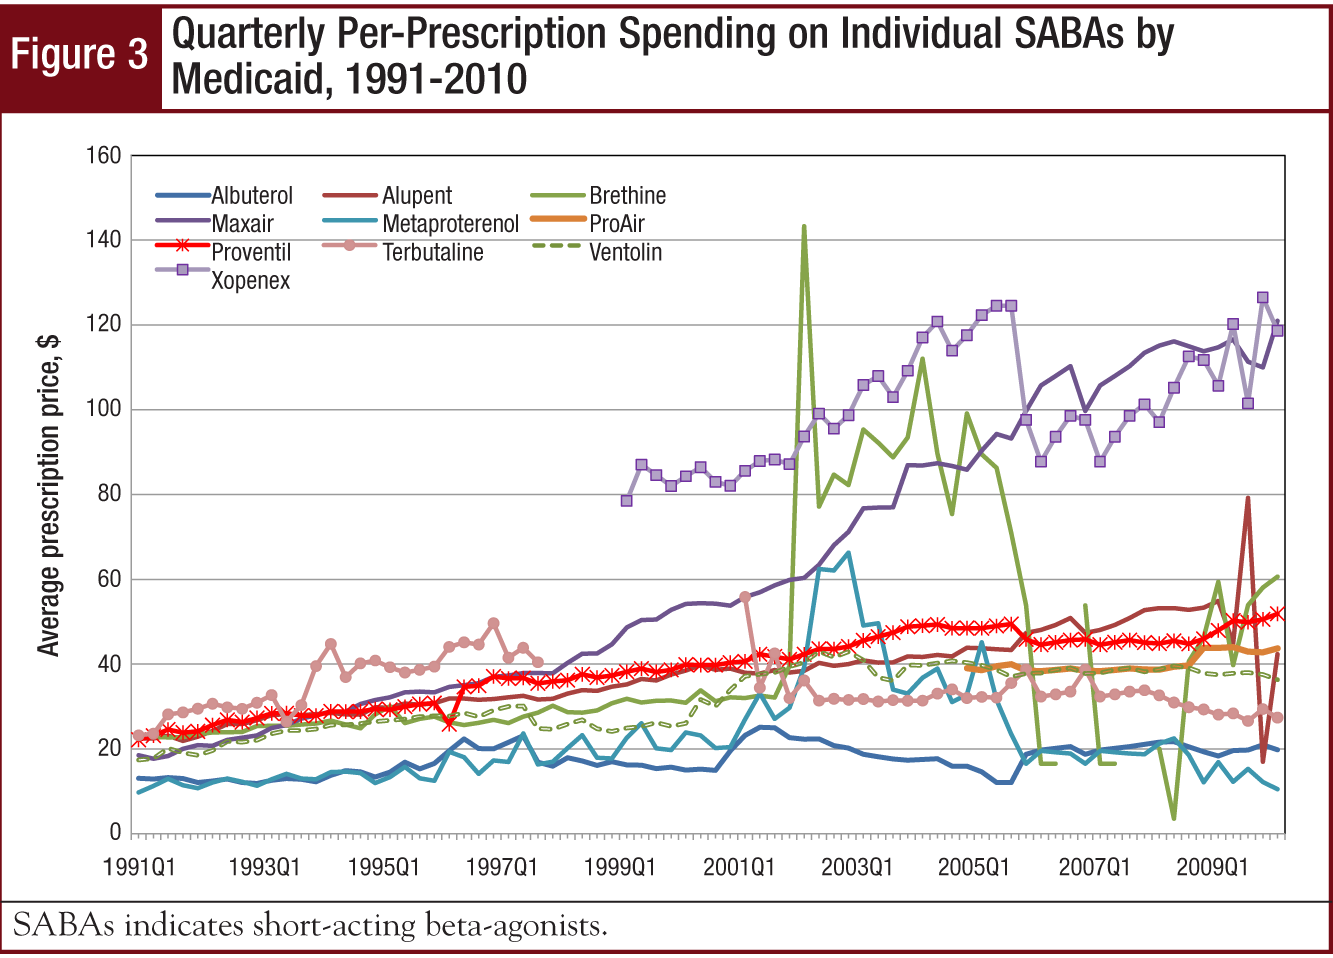 Figure 3 - Quarterly Per-Prescription Spending on Individual SABAs by Medicaid, 1991-2010